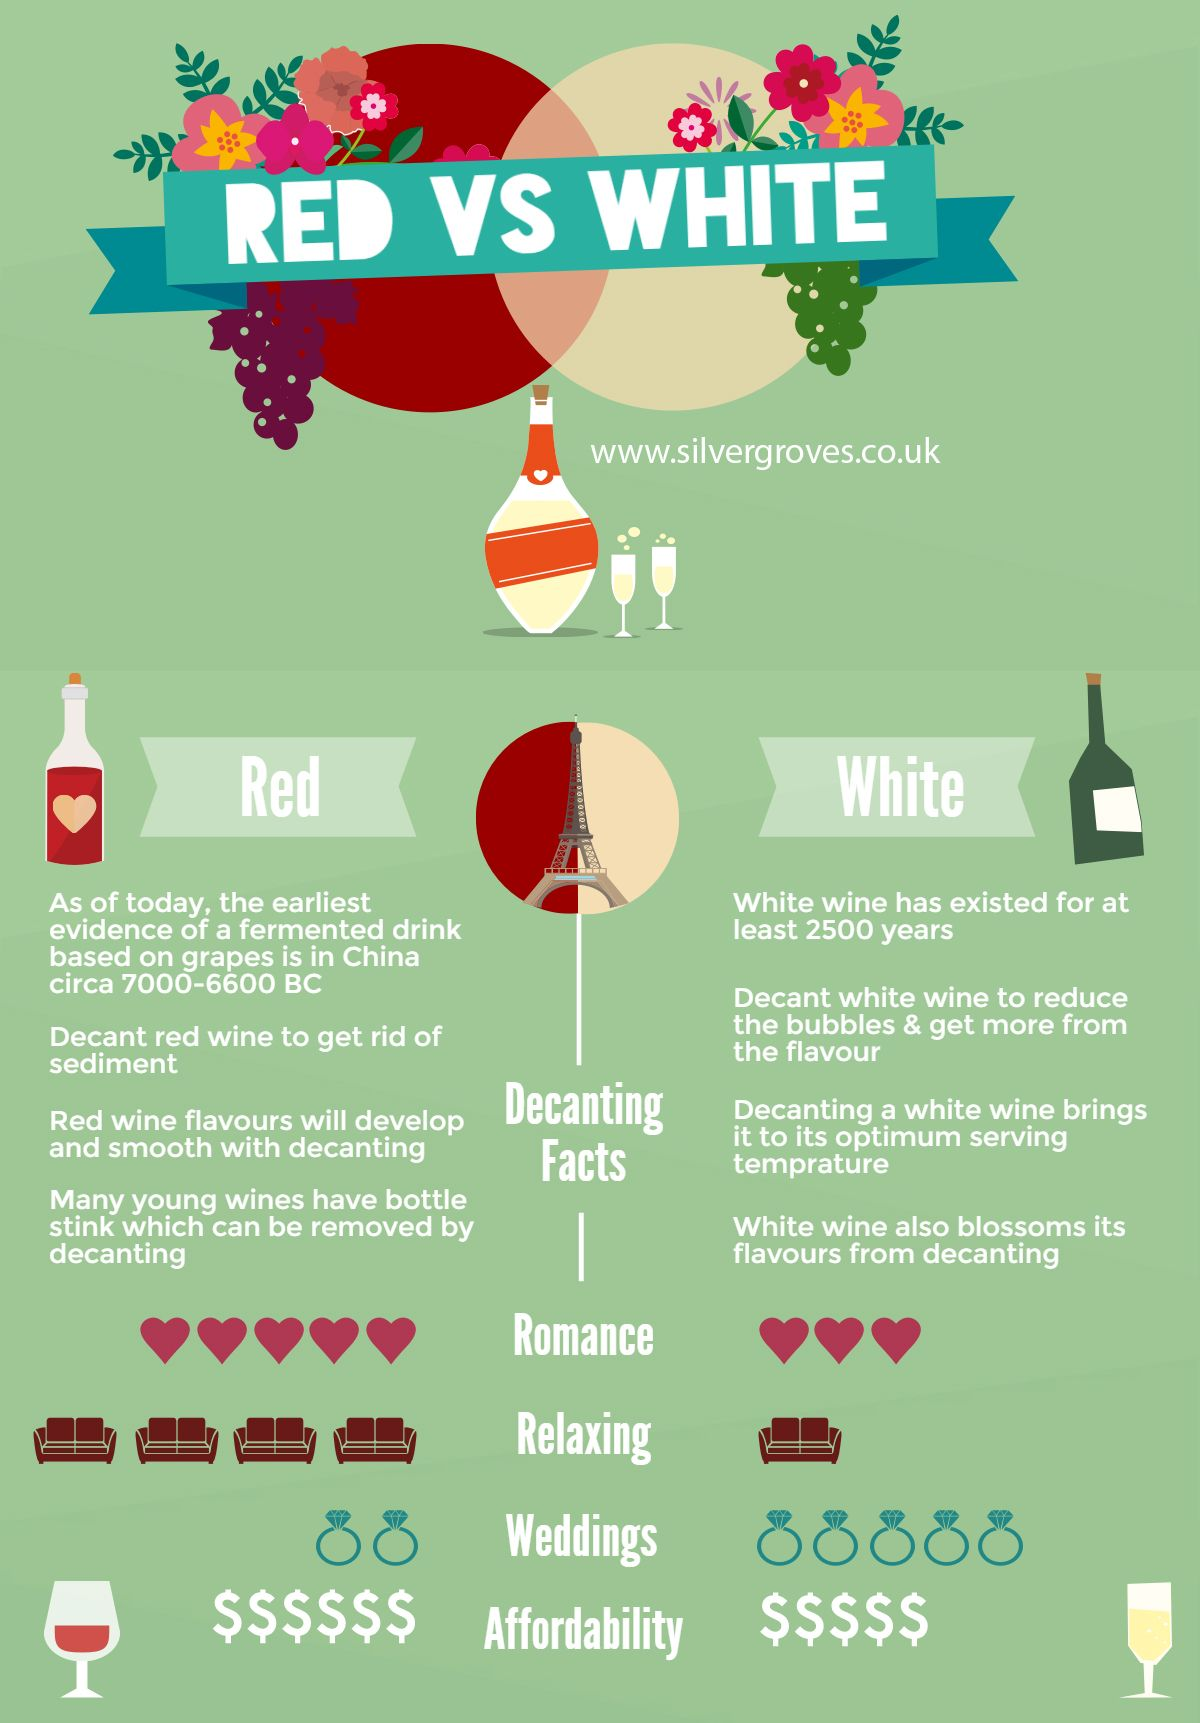 Red vs White Wine #infographic